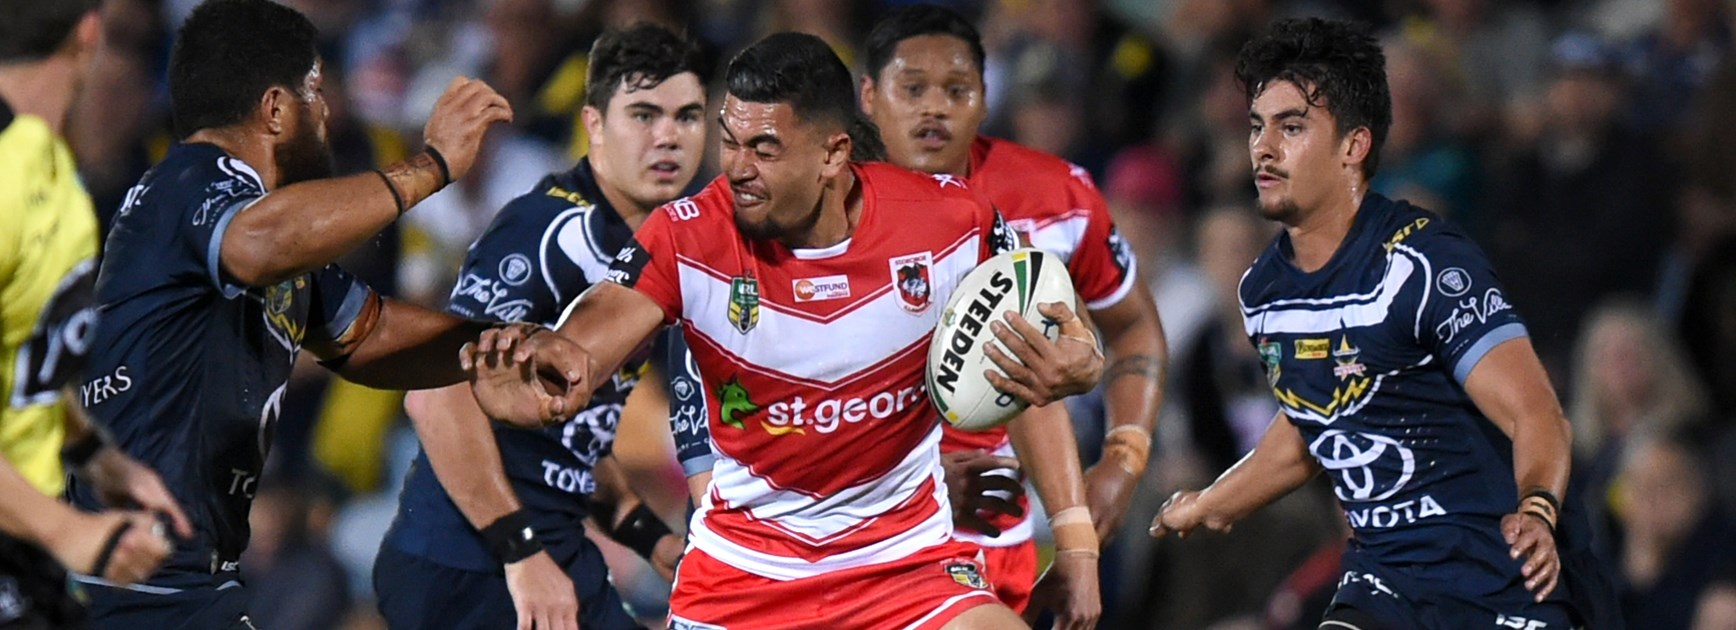 North Queensland Cowboys: 2019 Round 1 predicted team